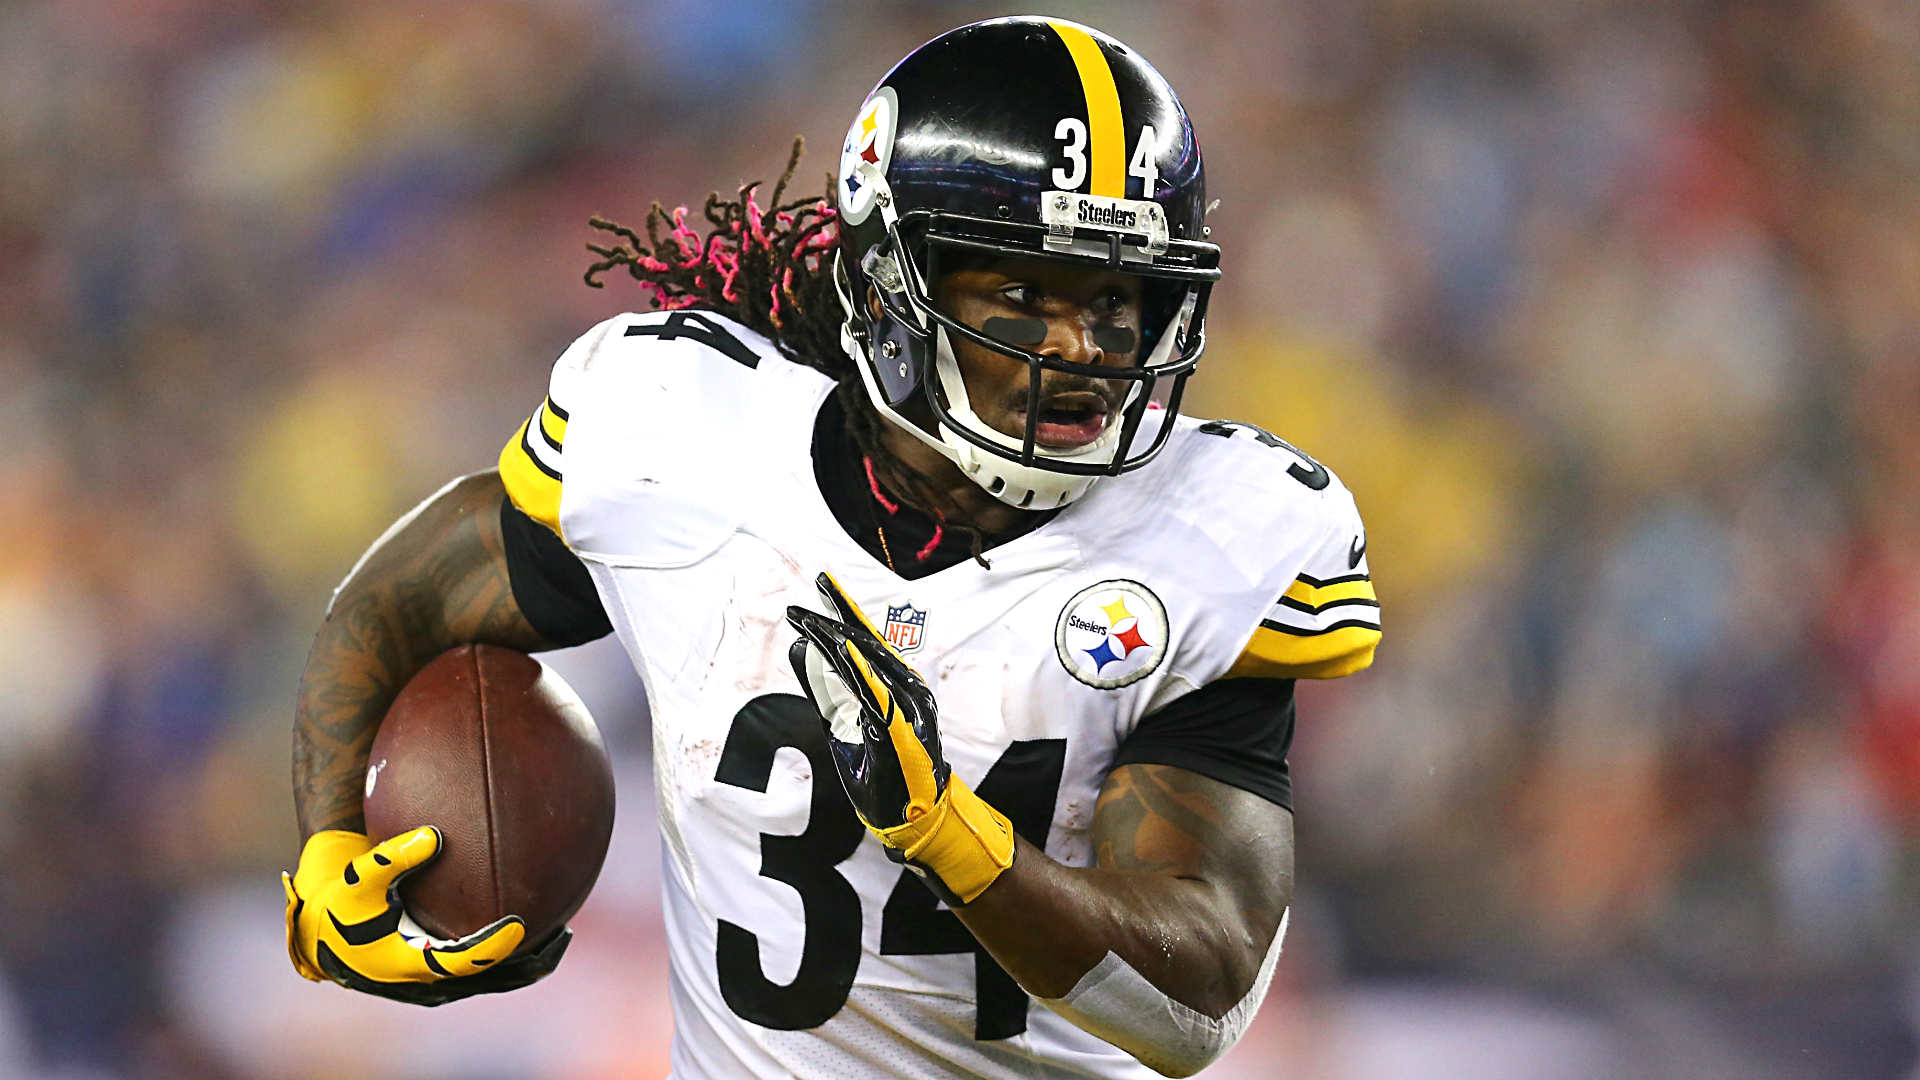 DeAngelo-Williams-091015-USNews-Getty-FTR